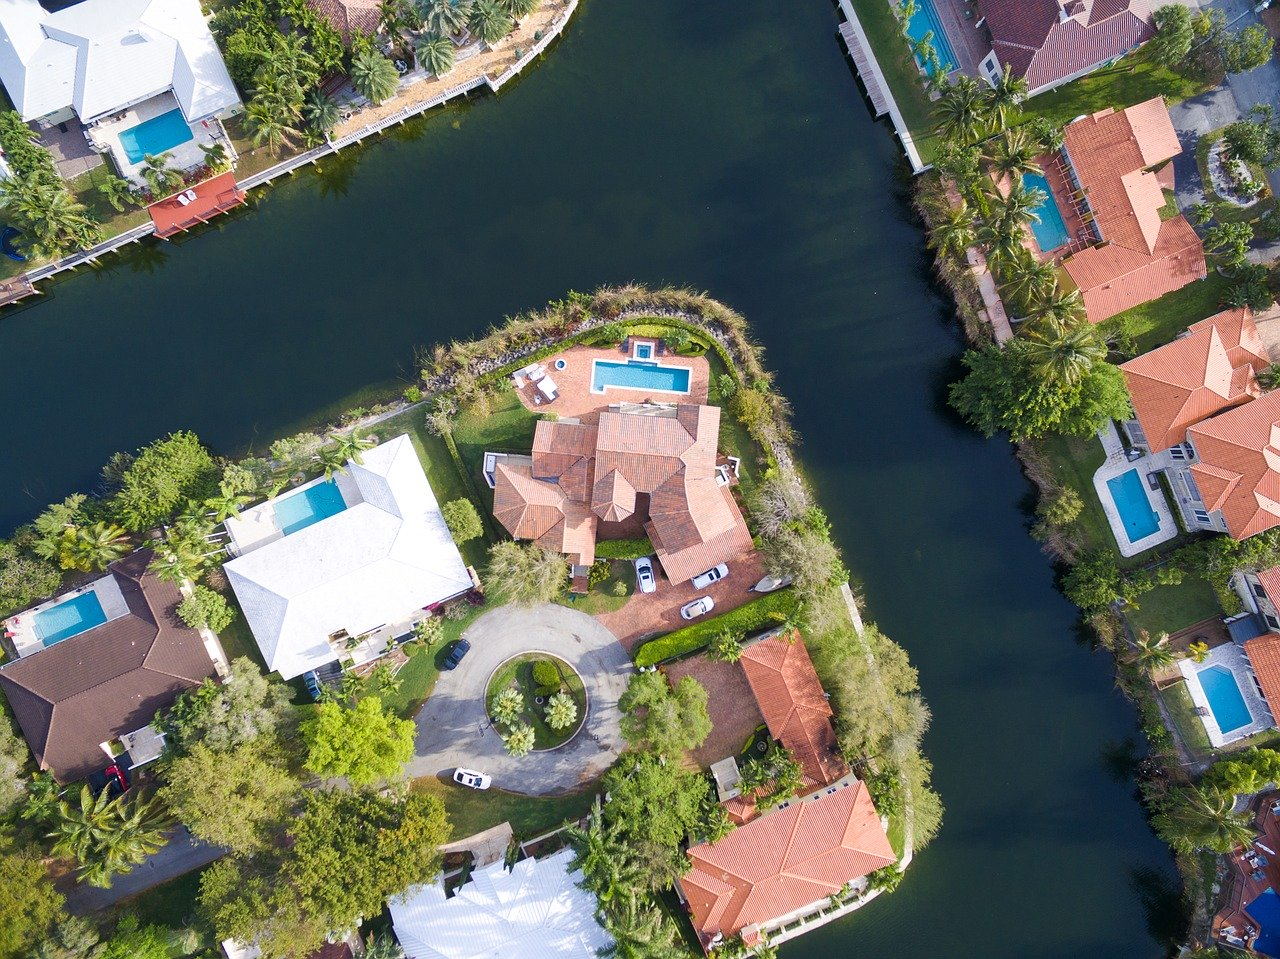 Florida realtors seeing influx of buyers from NYC, other large cities